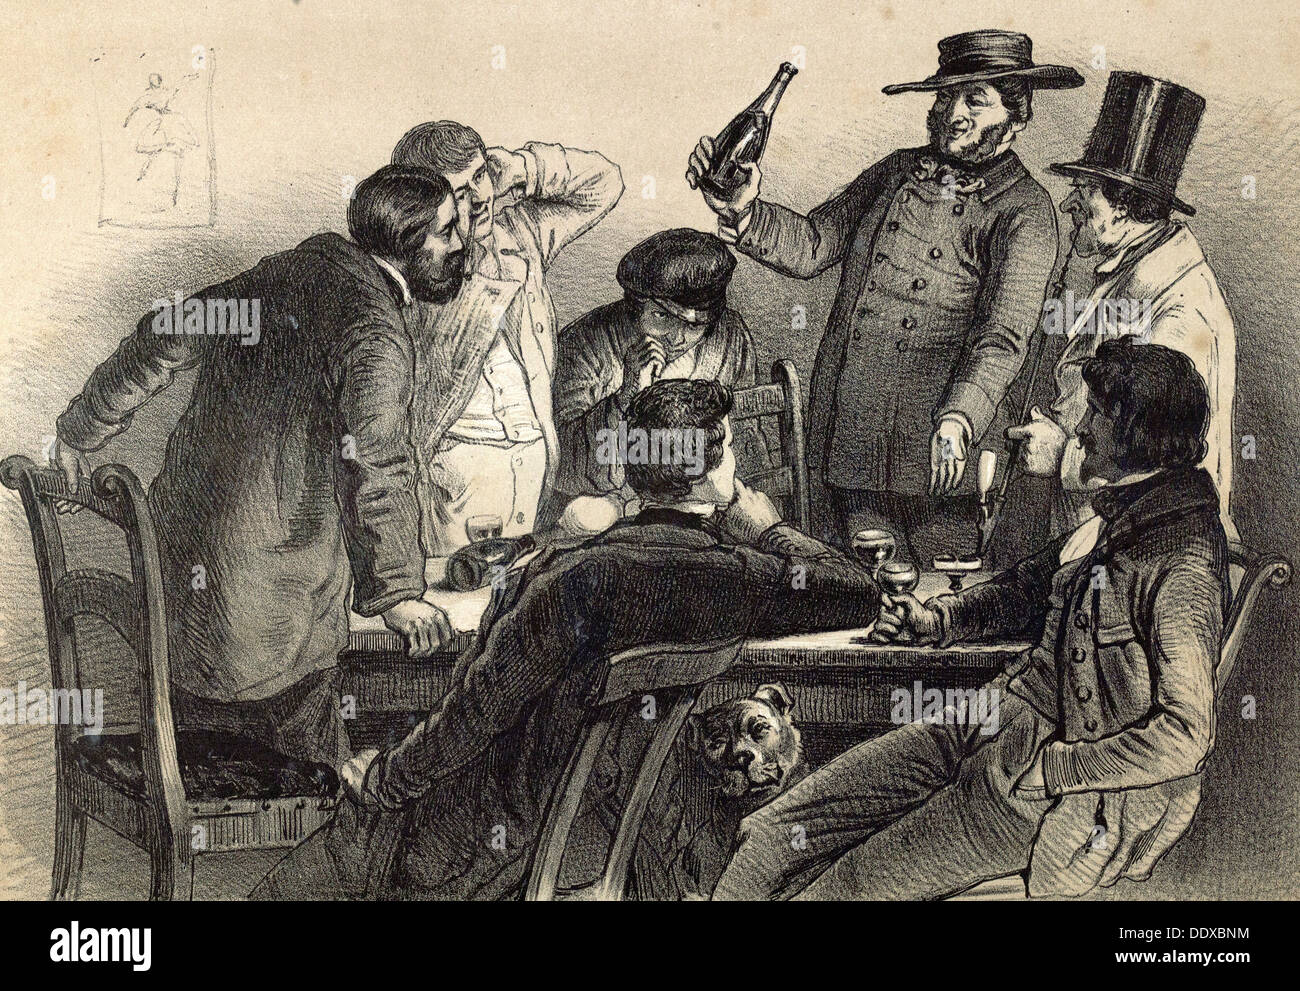 Drinking the bottles in Germany, 19th century lithography, wine, wine glass, wine-bottle, alcohol, alcoholic, men, dog, glasses - Stock Image